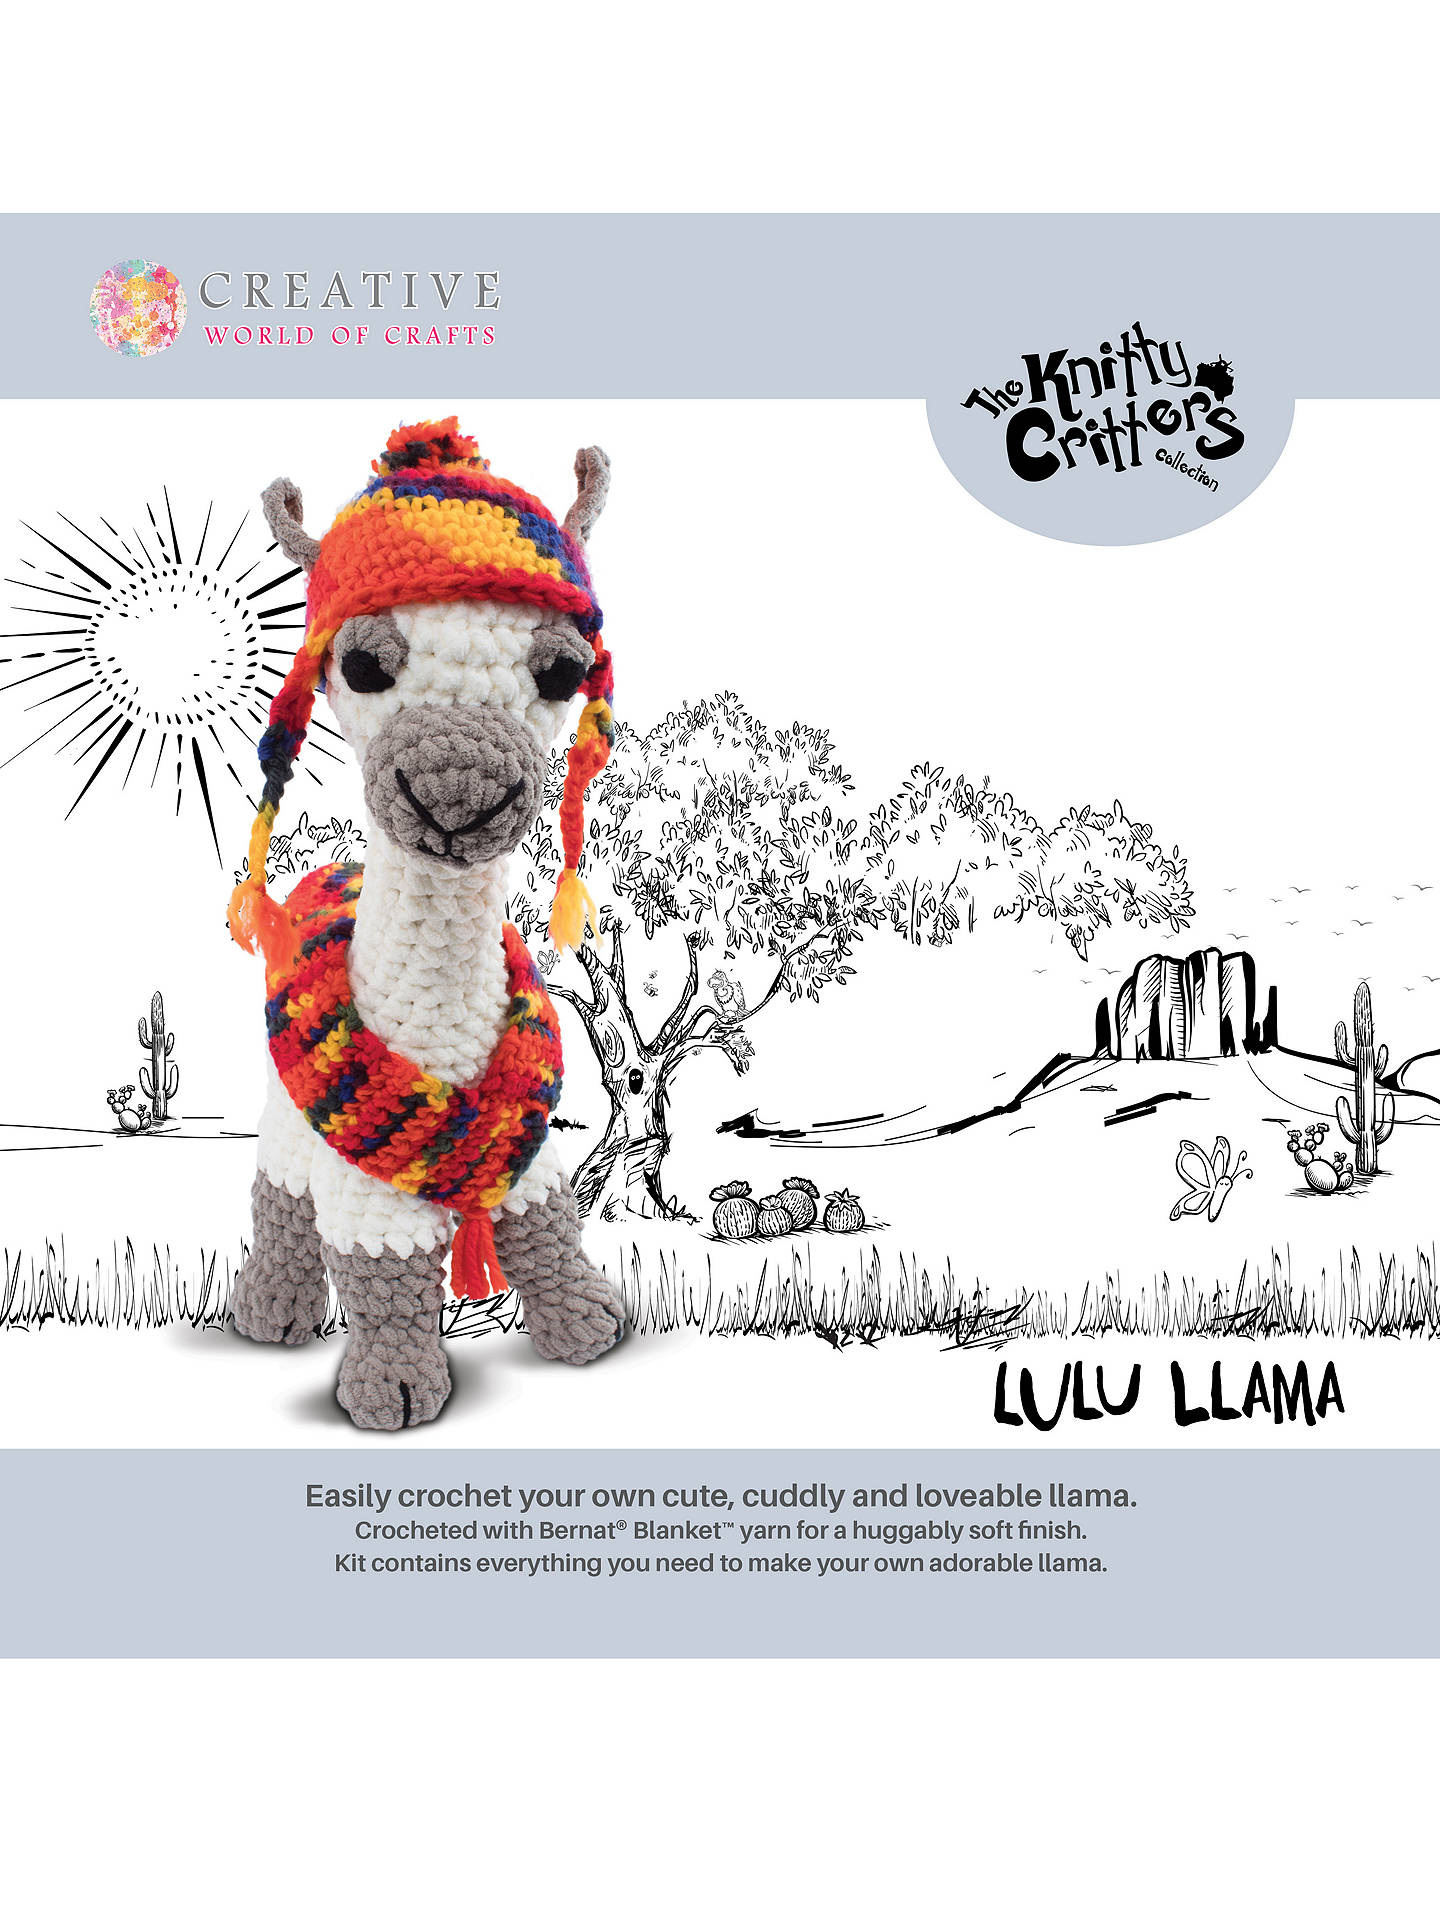 Knitty Critters Lulu Llama Crochet Kit